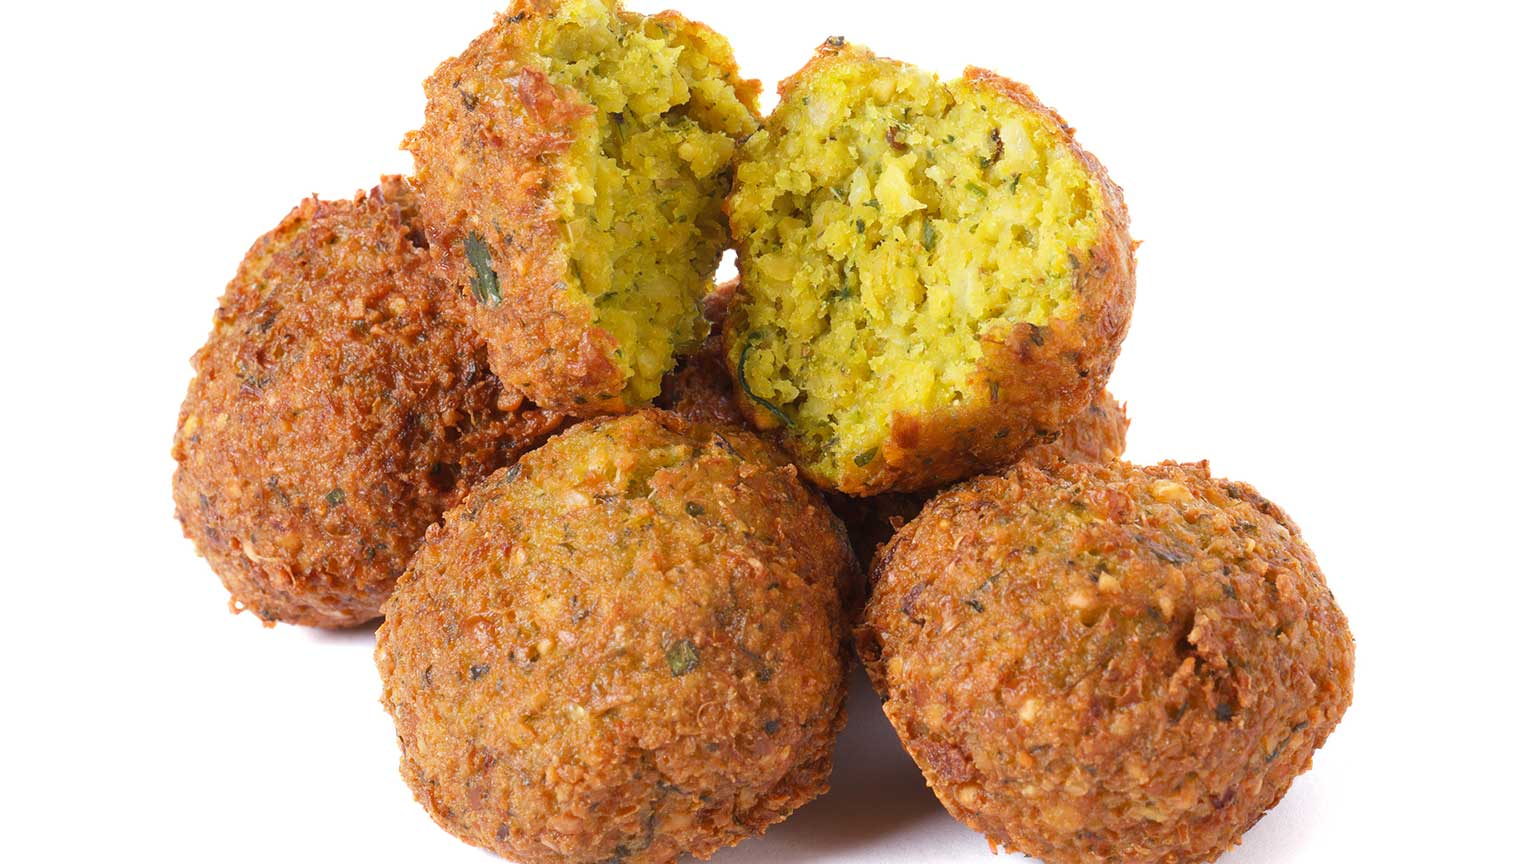 Golden-brown falafel